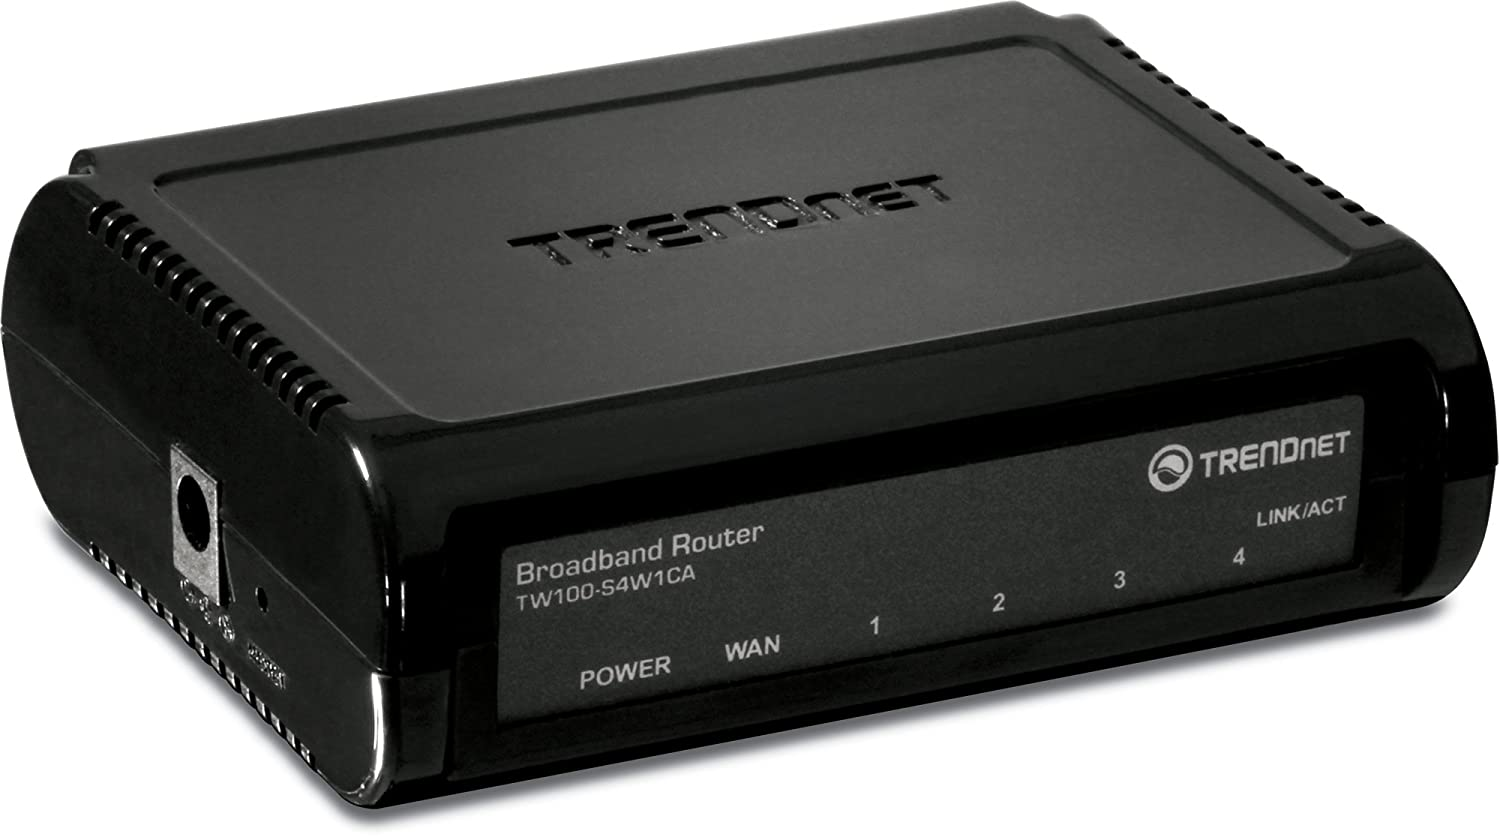 TRENDnet TW100-S4W1CA v2.0R Router Drivers (2019)